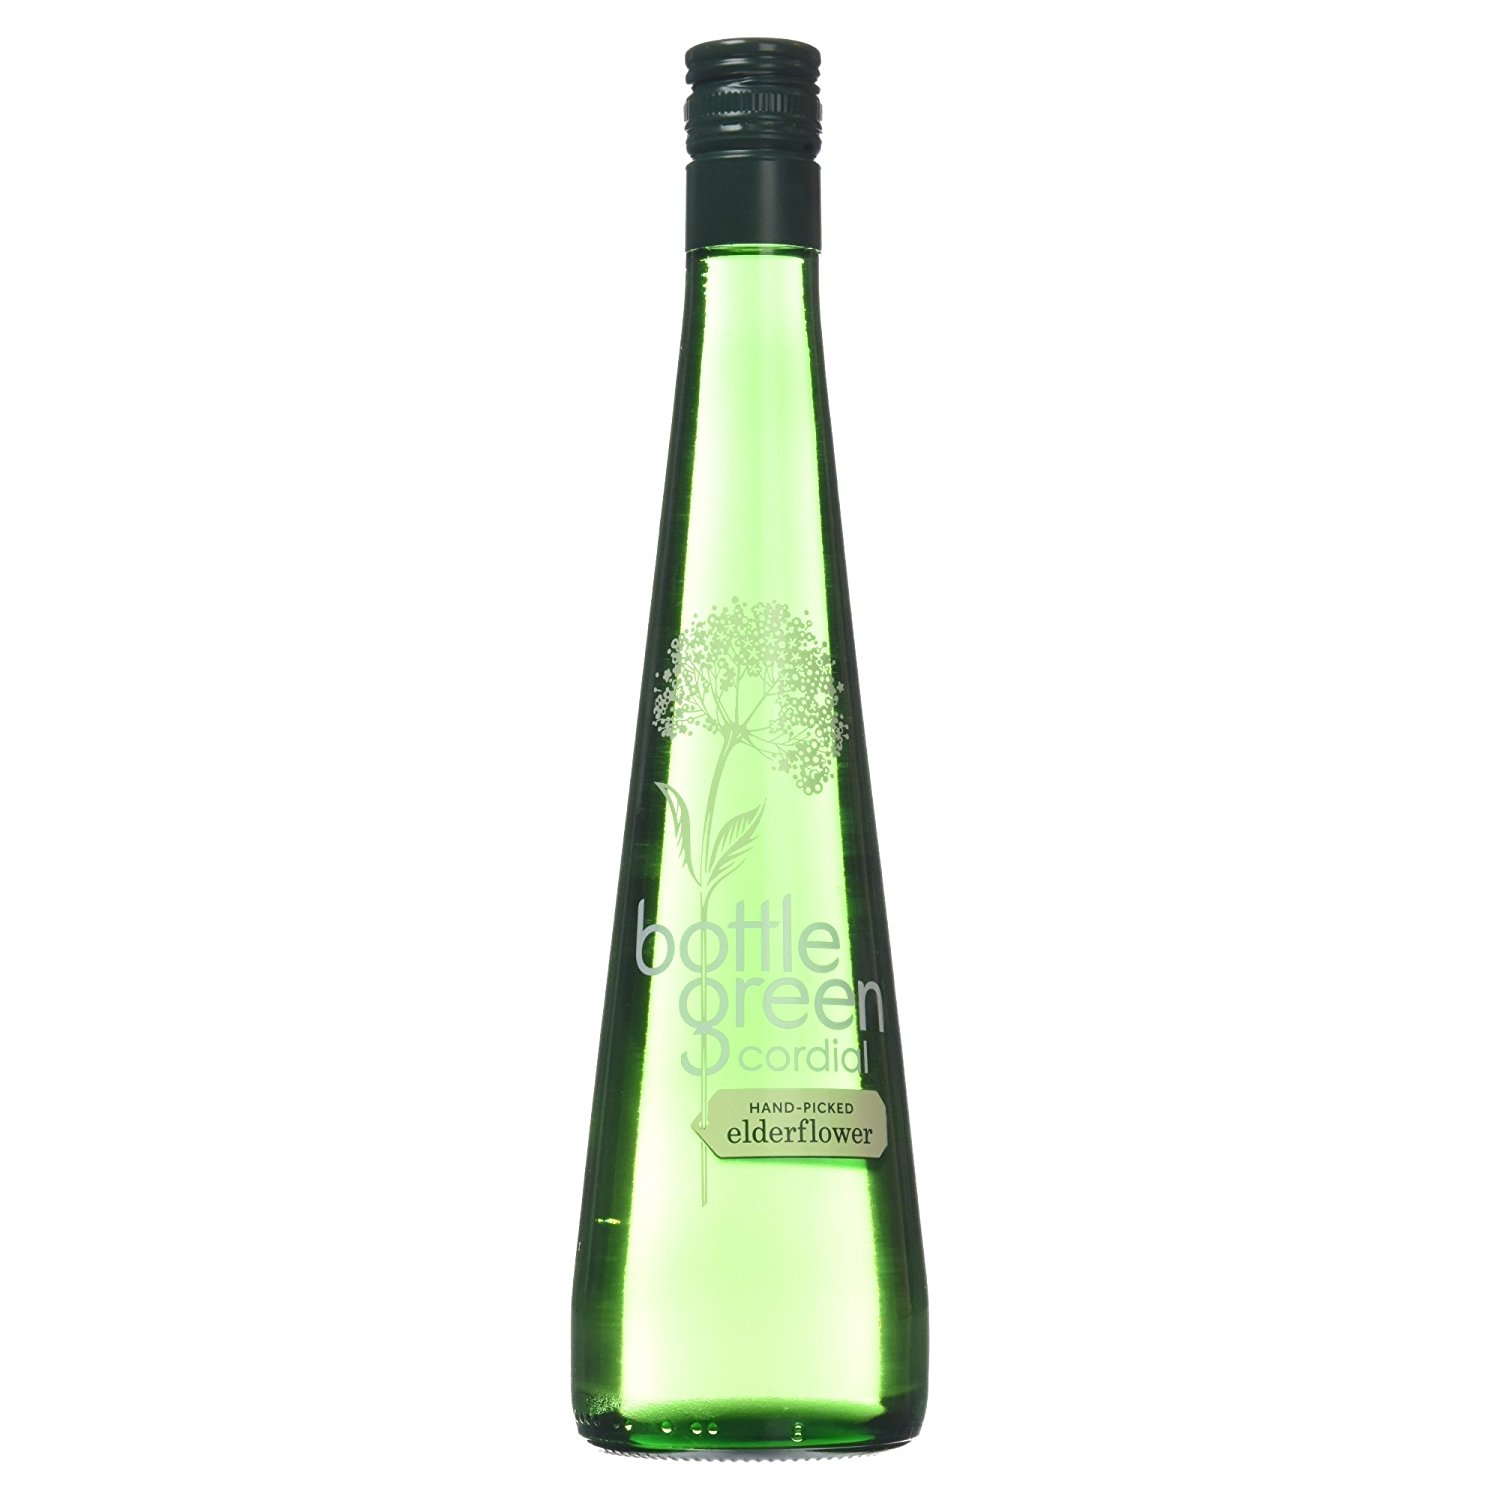 Bottlegreen Elderflower Cordial